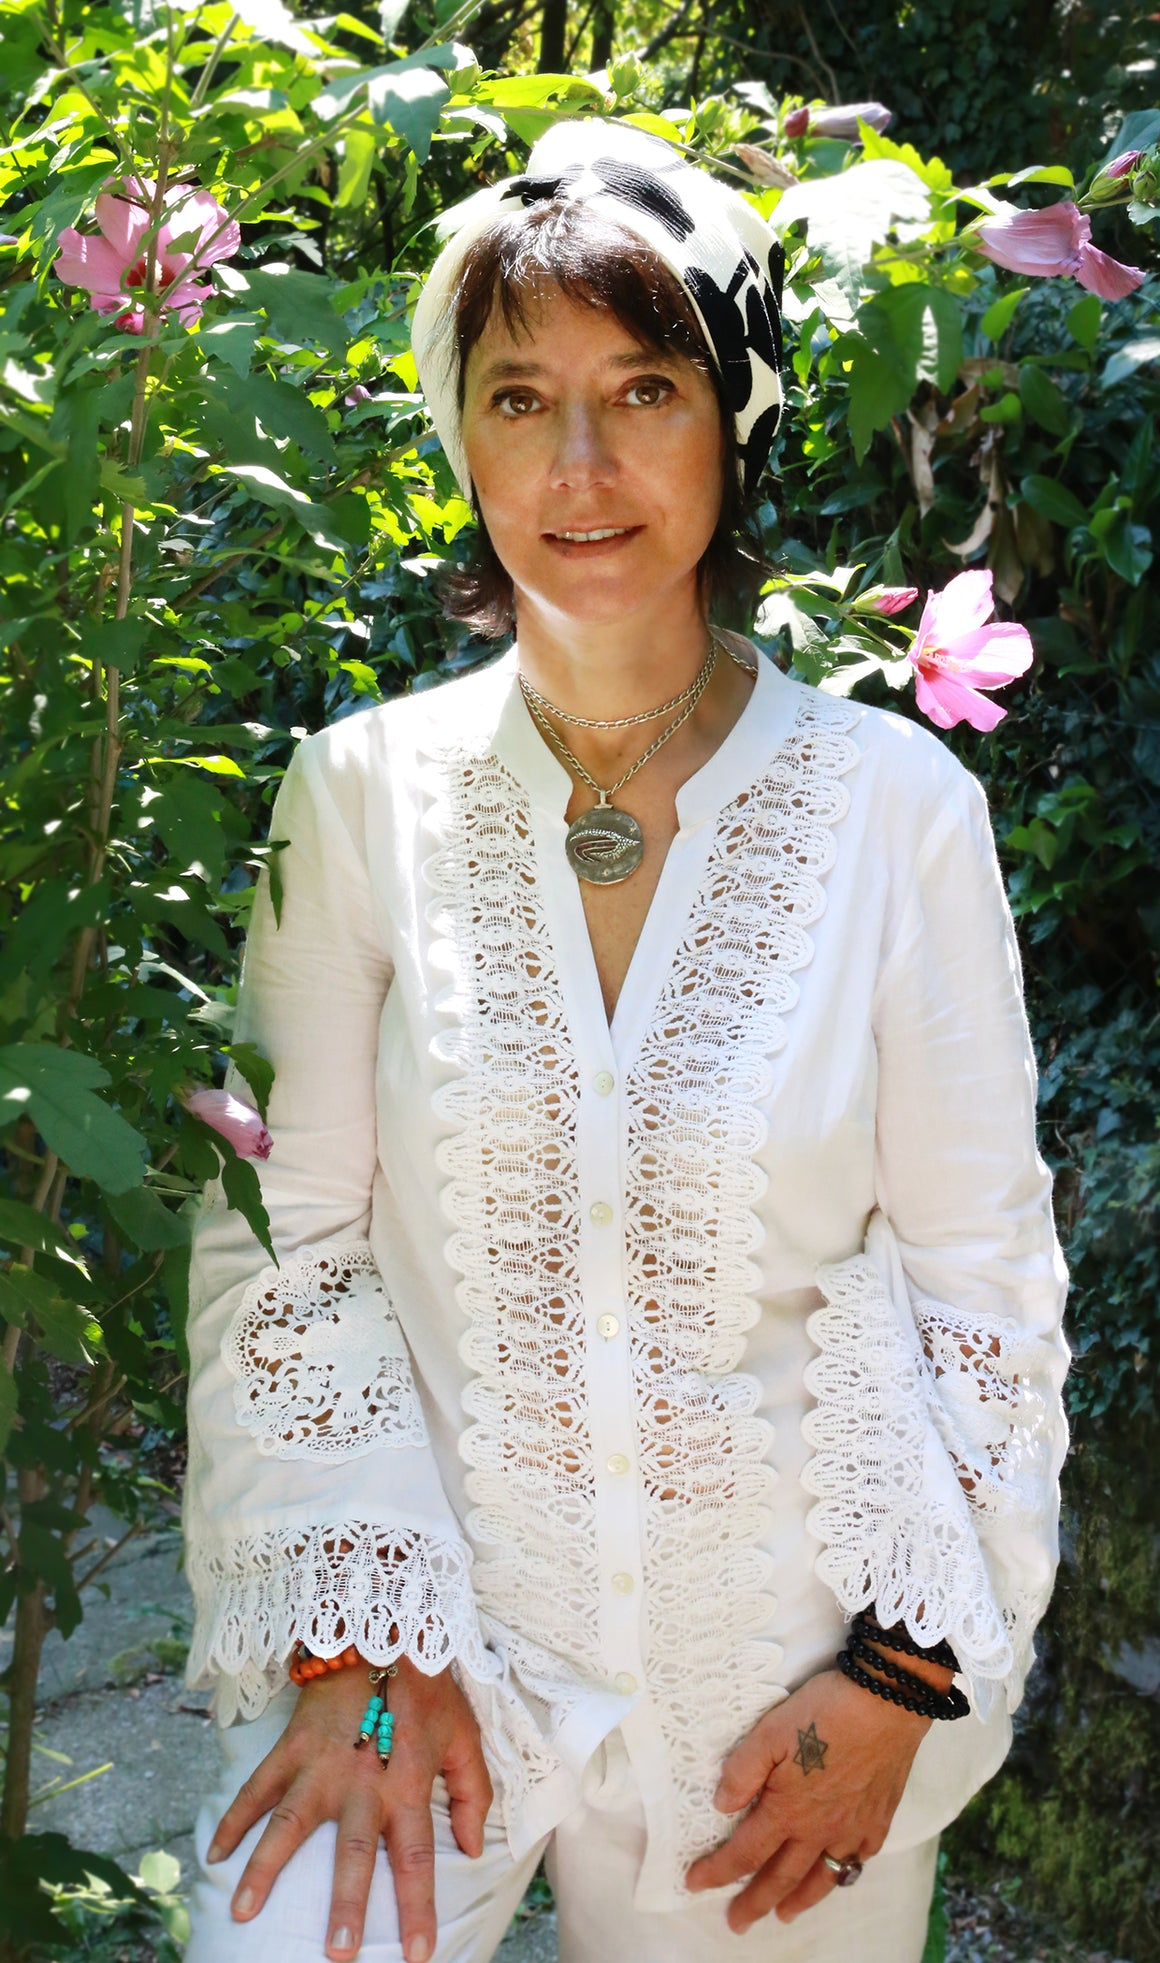 November 02, 2019 - Saturday - 10-1:30pm - Mother Mantra - The Ancient Shamanic Yoga of Non-Duality - The Workshop - with Selene Calloni Williams